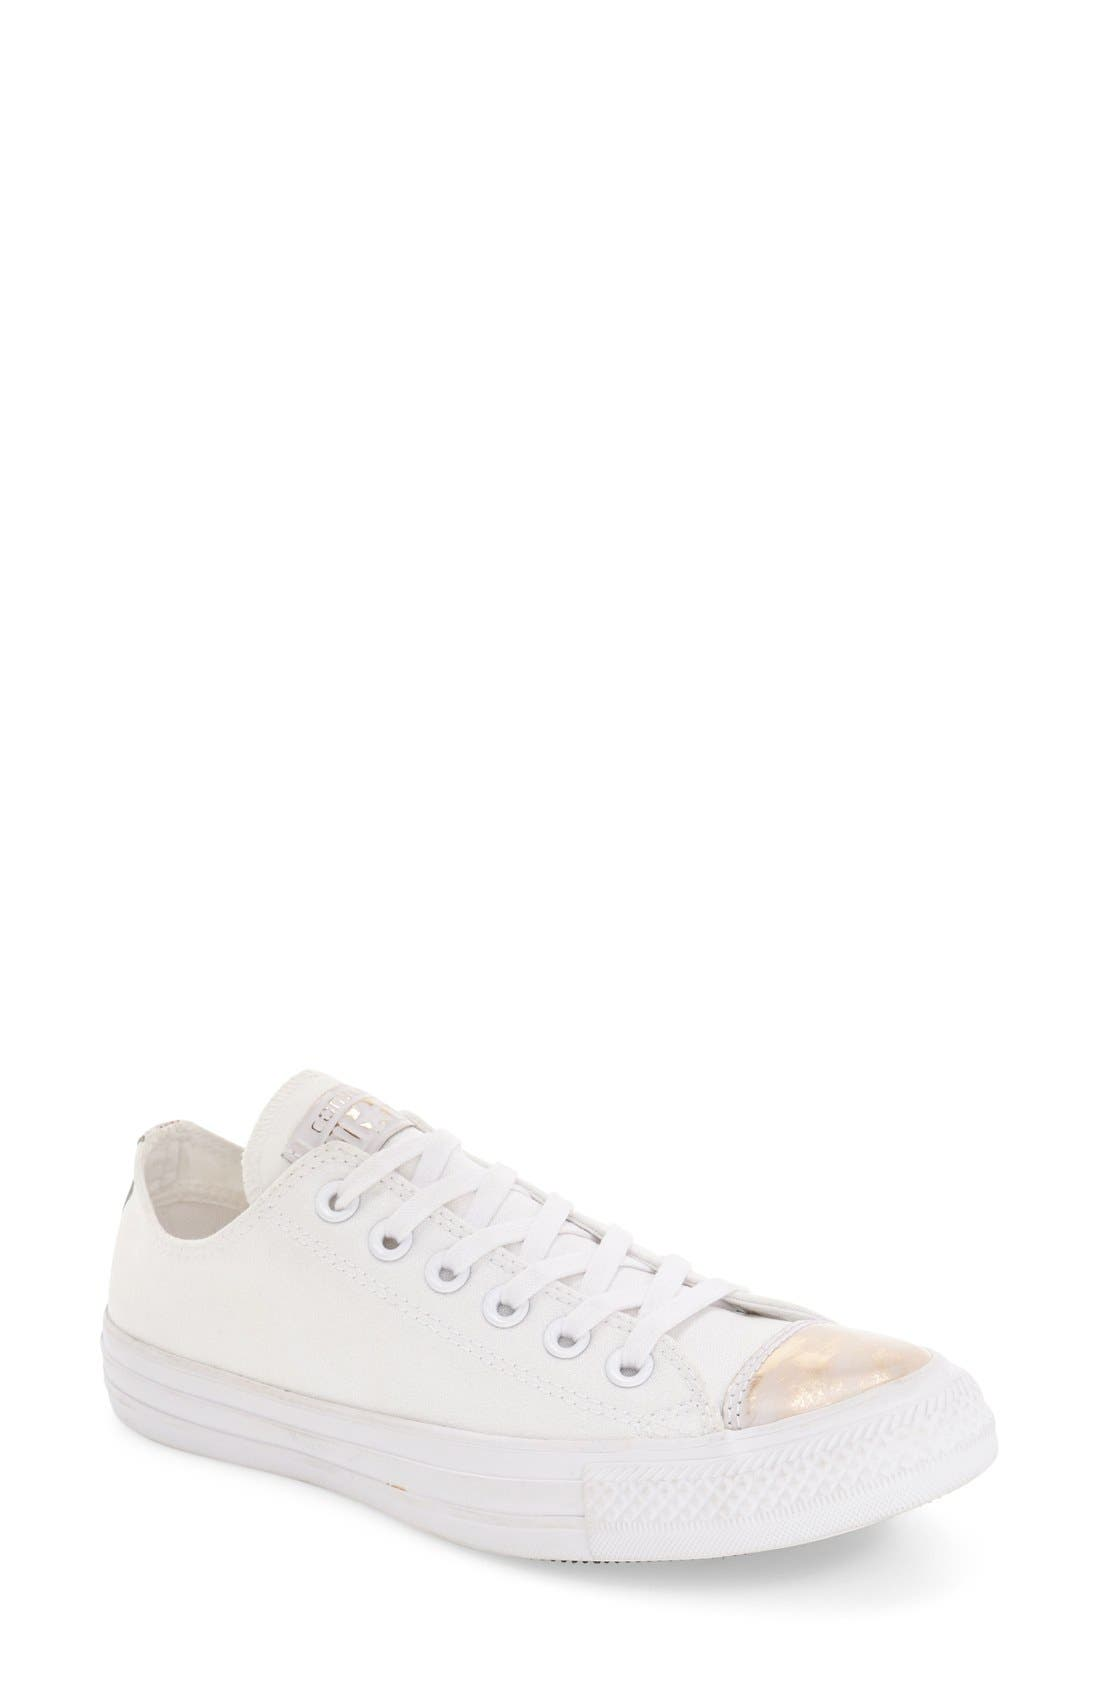 Main Image - Converse Chuck Taylor® All Star® 'Brush Off' Metallic Cap Toe Sneaker (Women)